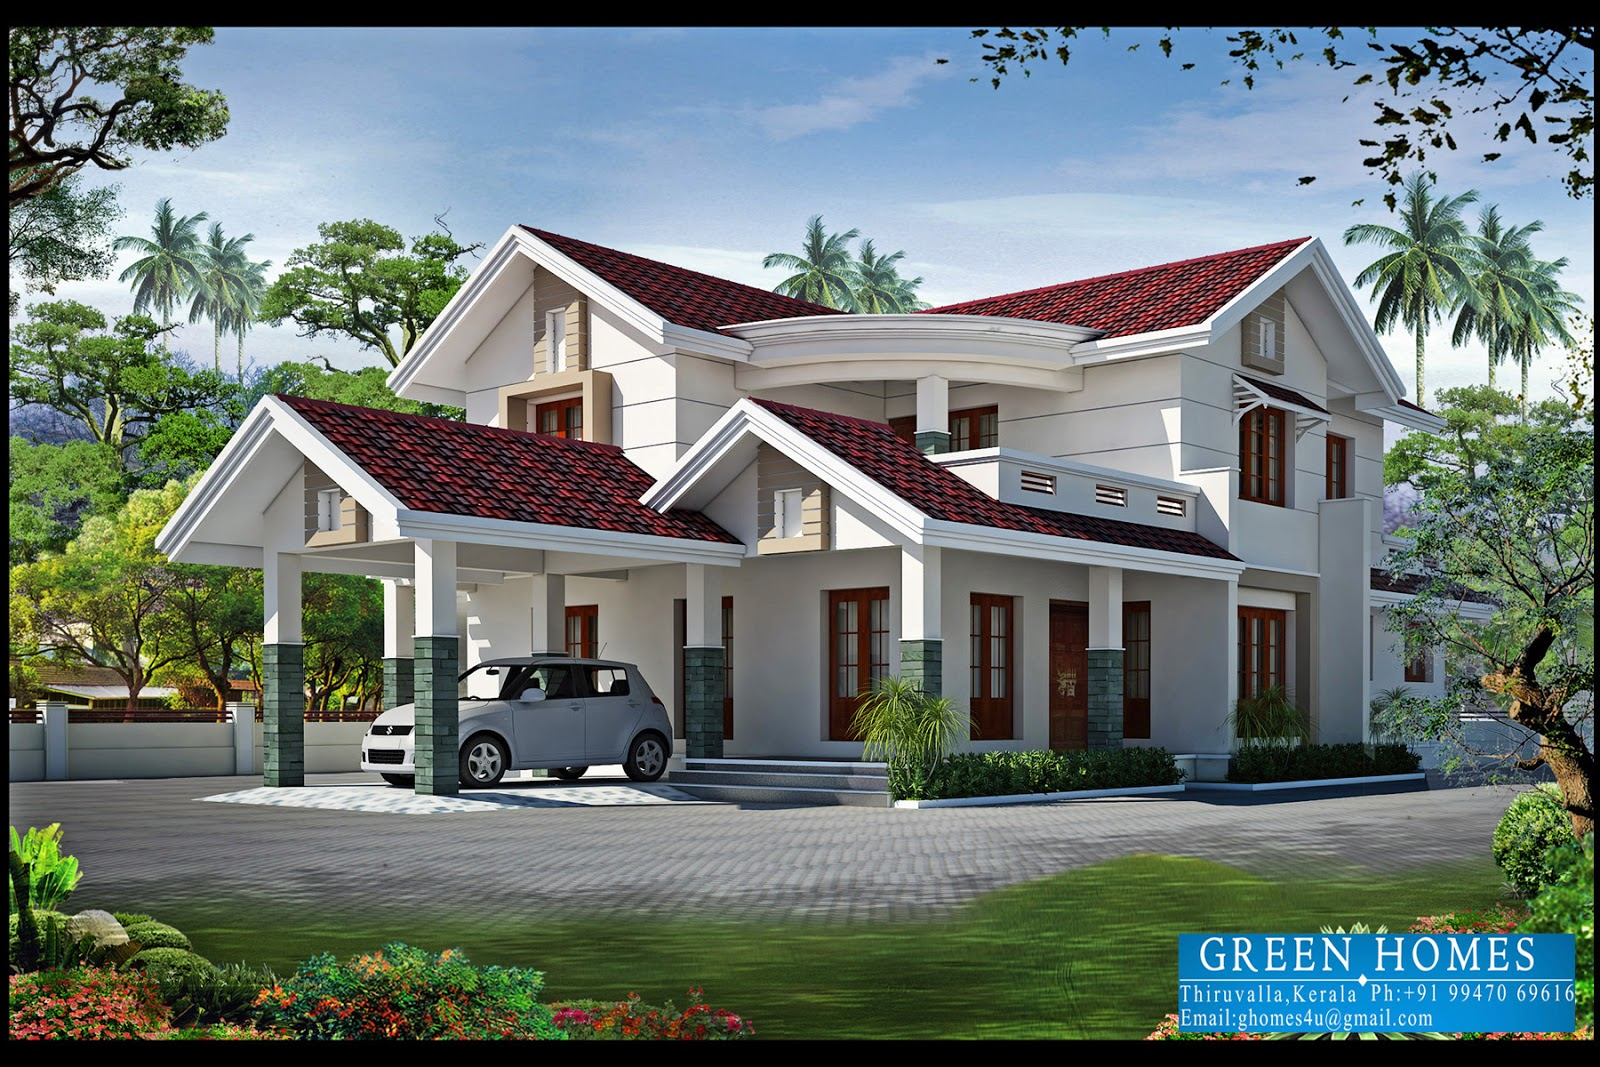 Green homes 4bhk kerala home design 2550 for Kerala homes photo gallery